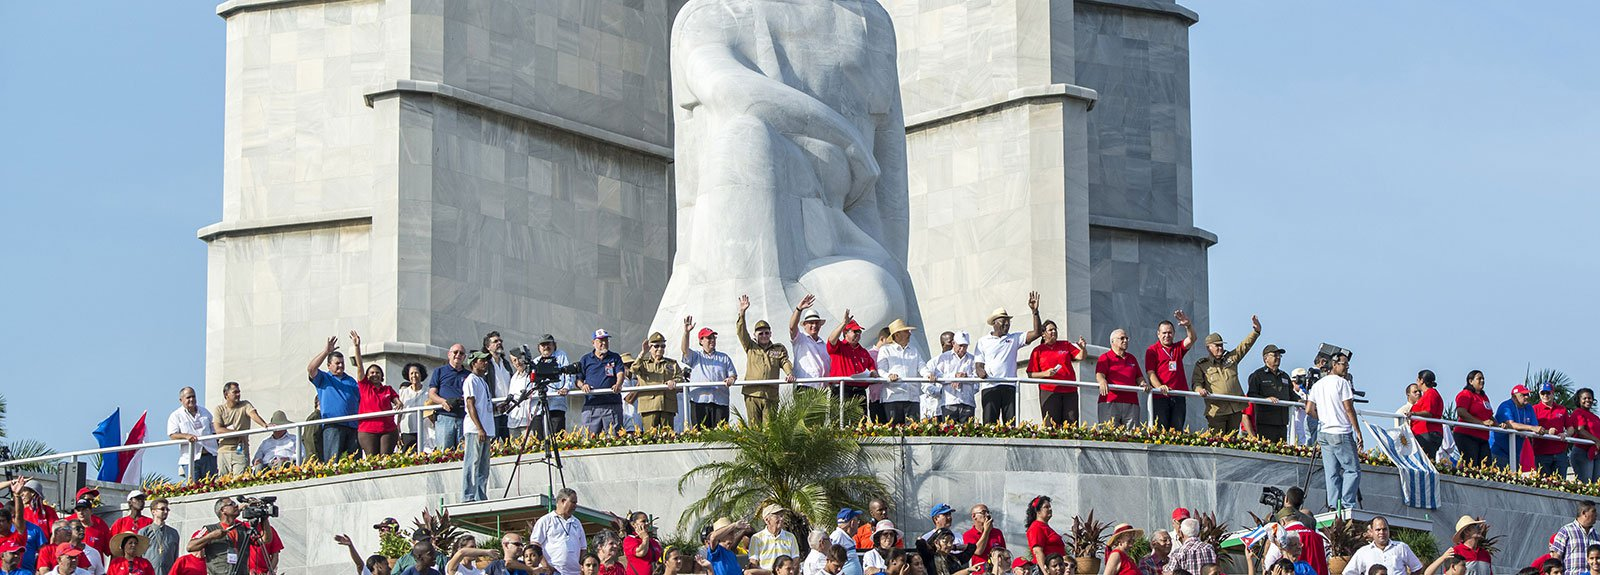 Revolution squarepeople of the cuban goberment gattered below Marti statue